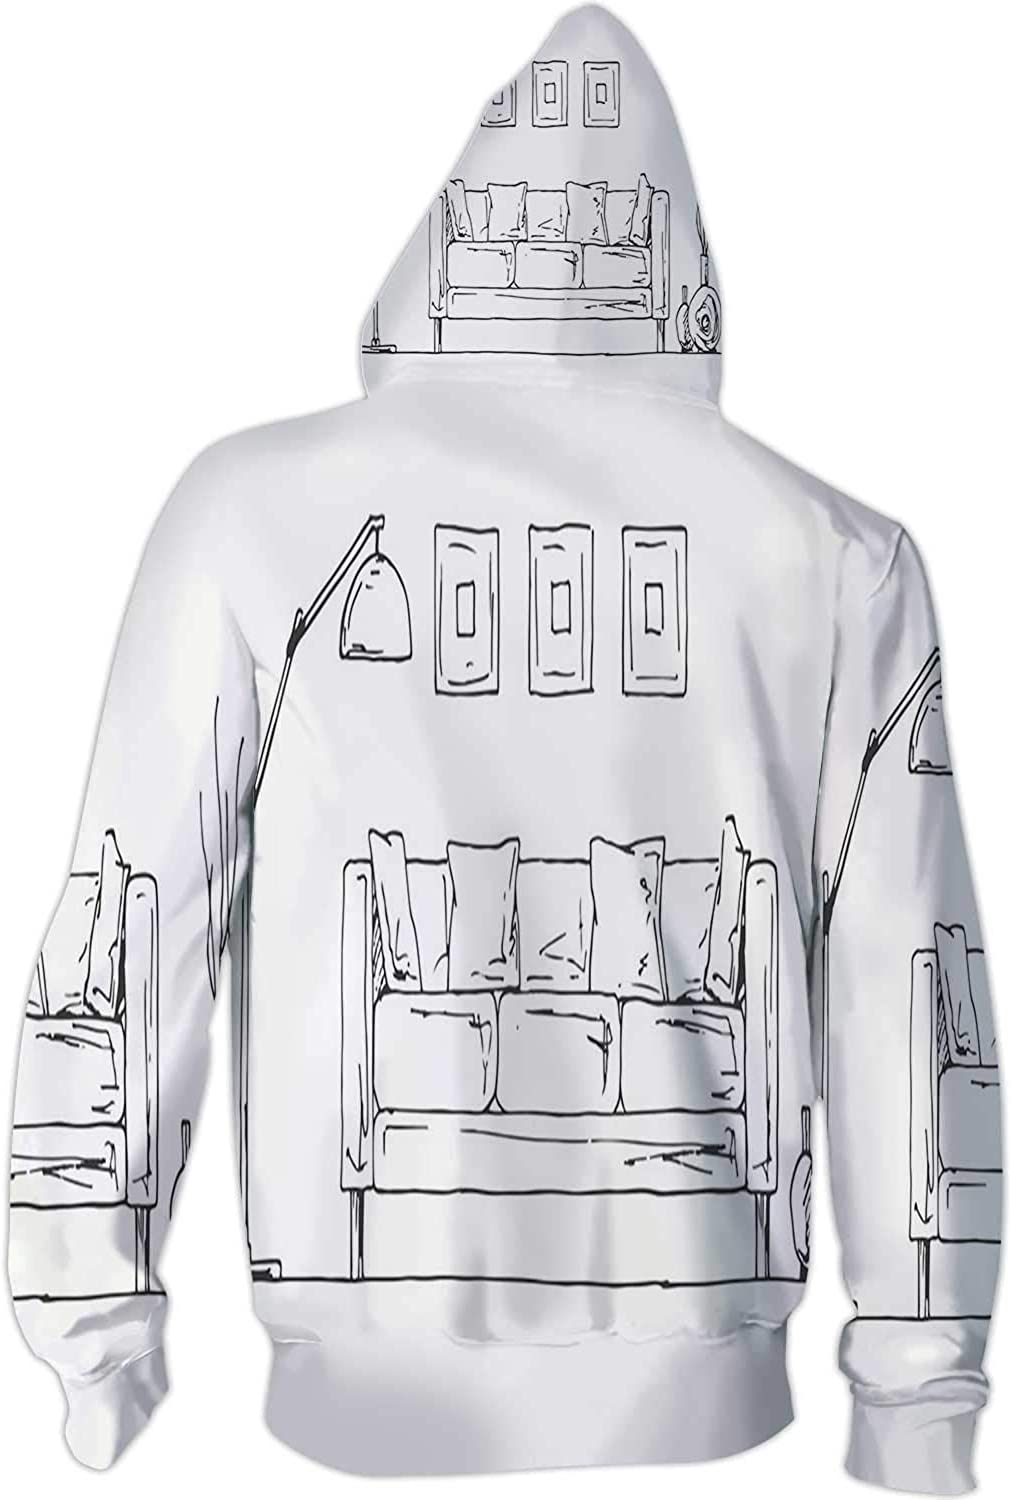 Space S Vector Illustration of Hand Drawn Space Elements Japan,Ladies Full Zip Fleece with Pocket Star